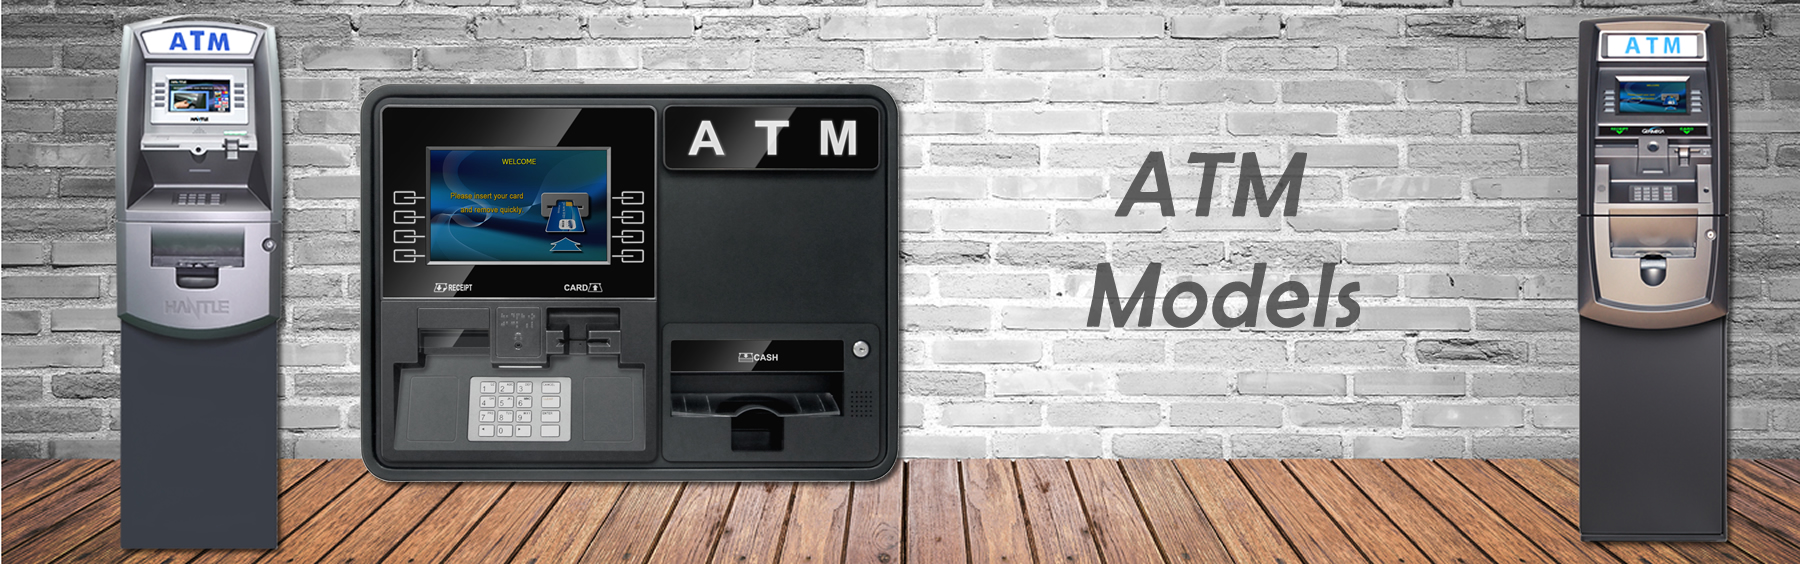 Genmega 2500 ATMs available from Funds Access Inc.